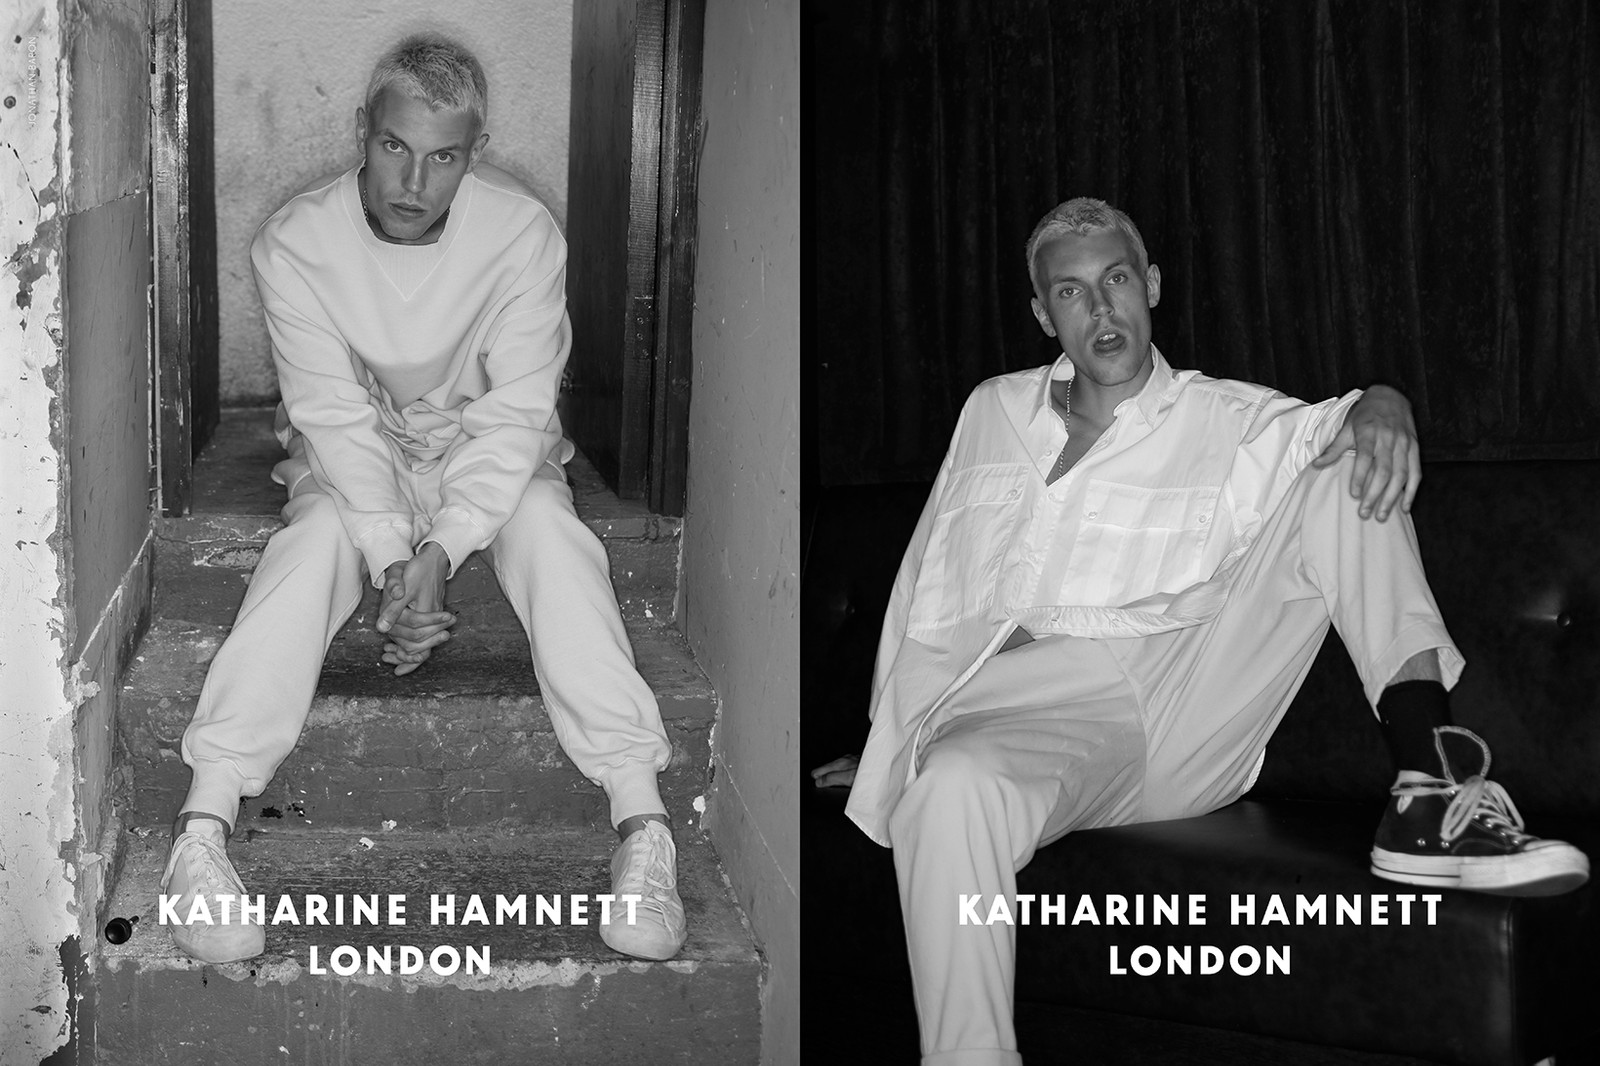 Katharine Hamnett Fall/Winter 2017 Menswear Interview Relaunch t-shirts tees kanye west clothing style fashion designer typography slogan 58% DON'T WANT PERSHING Margaret Thatcher